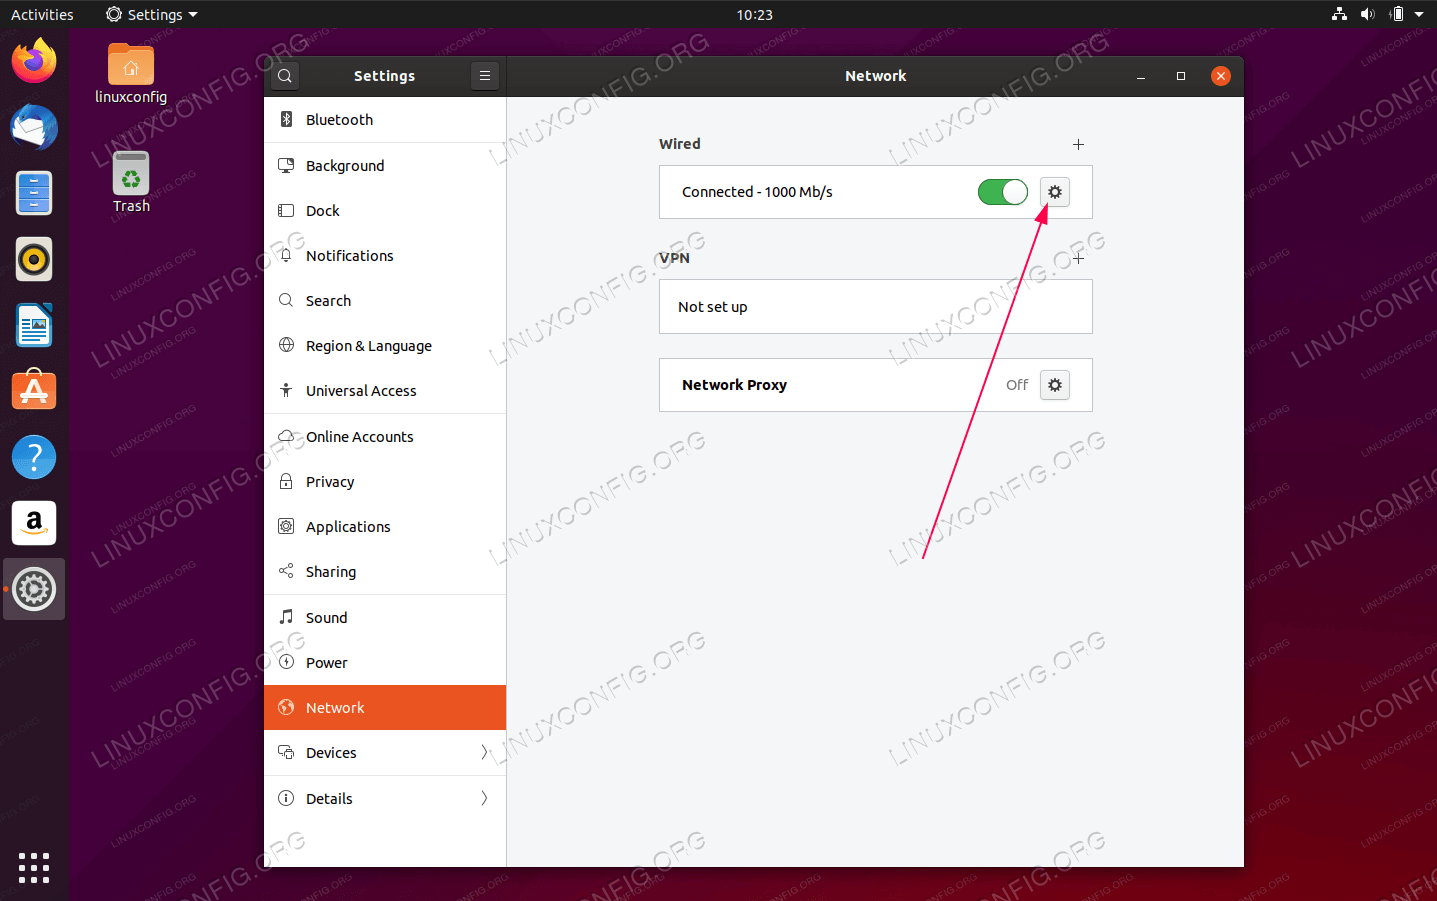 Next, click on the gear box icon next to your network connection you wish to configure. This could be wired or wireless connection.